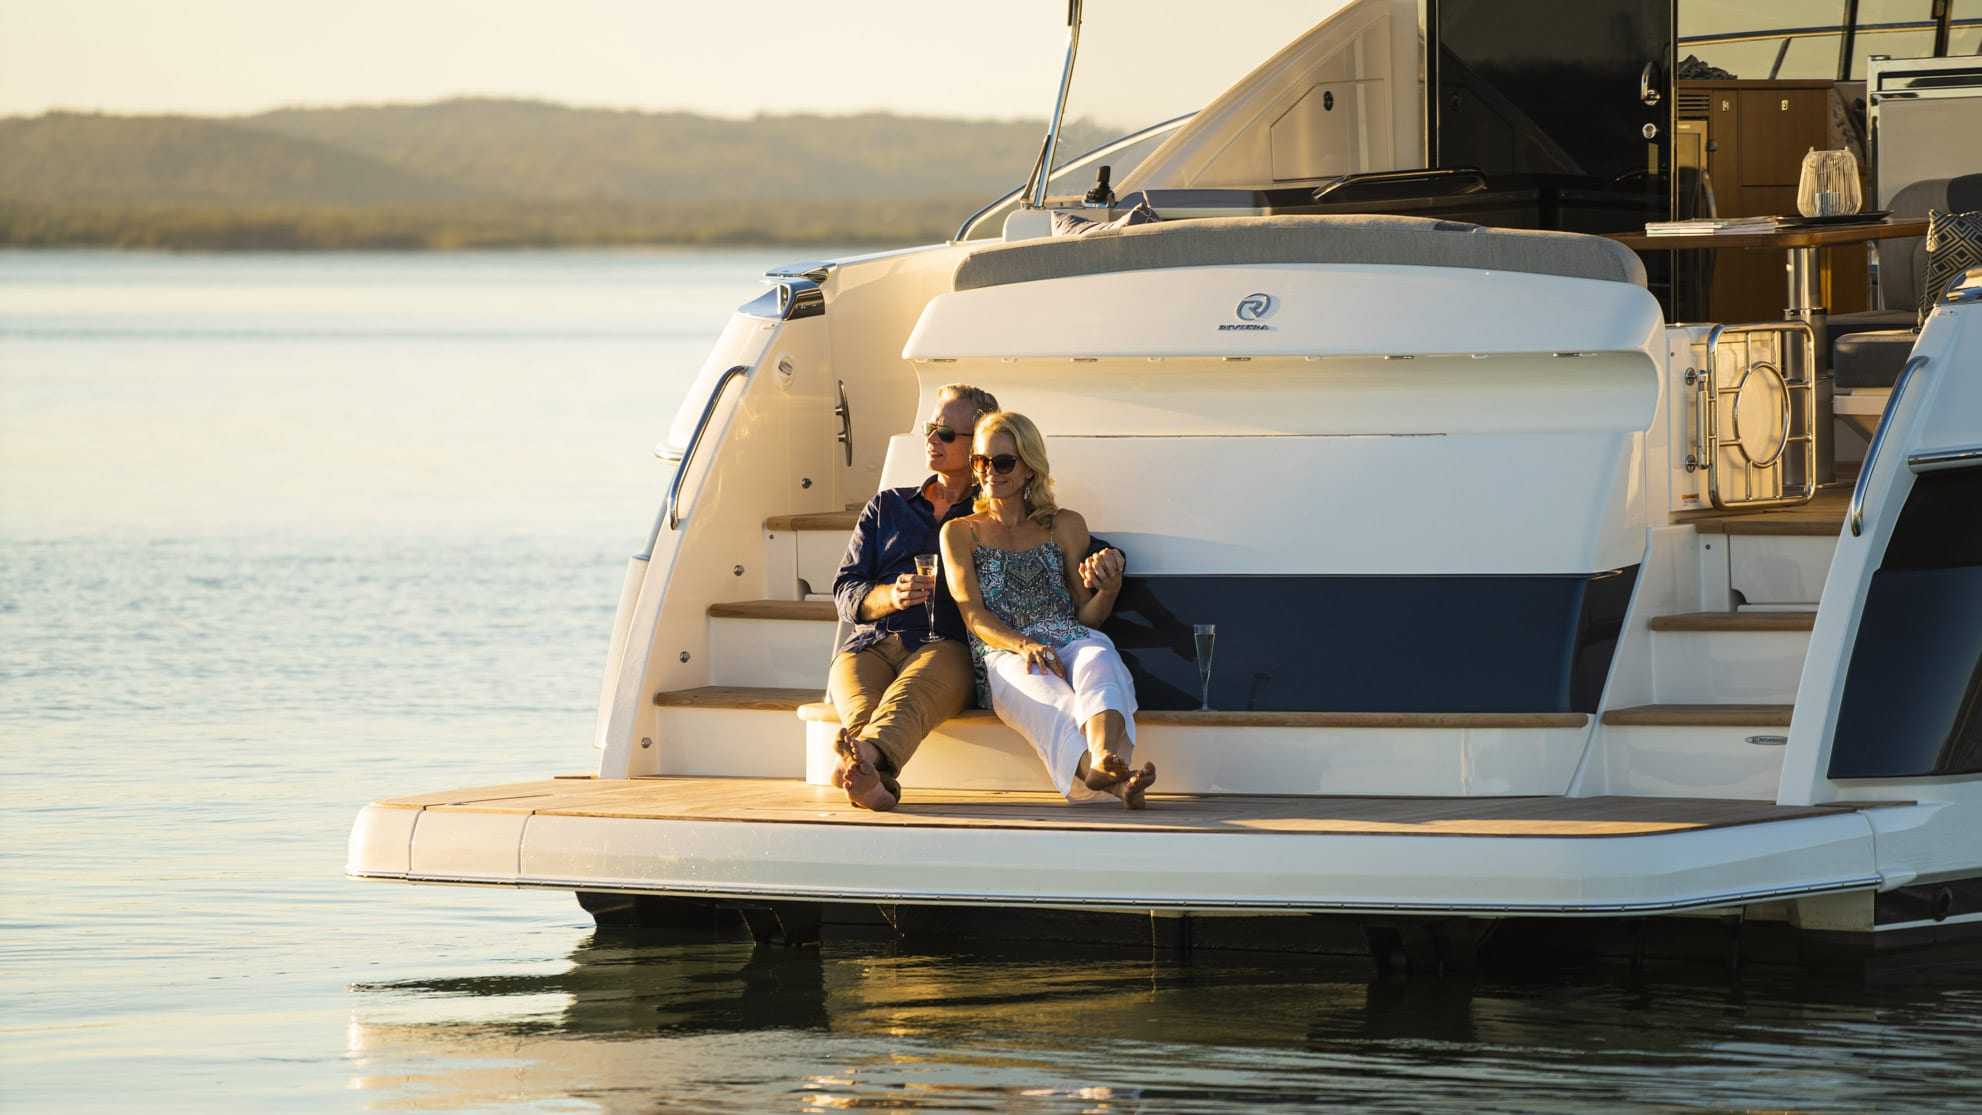 Riviera raft-up sets a new benchmark for enjoyment on Victoria's Gippsland Lakes